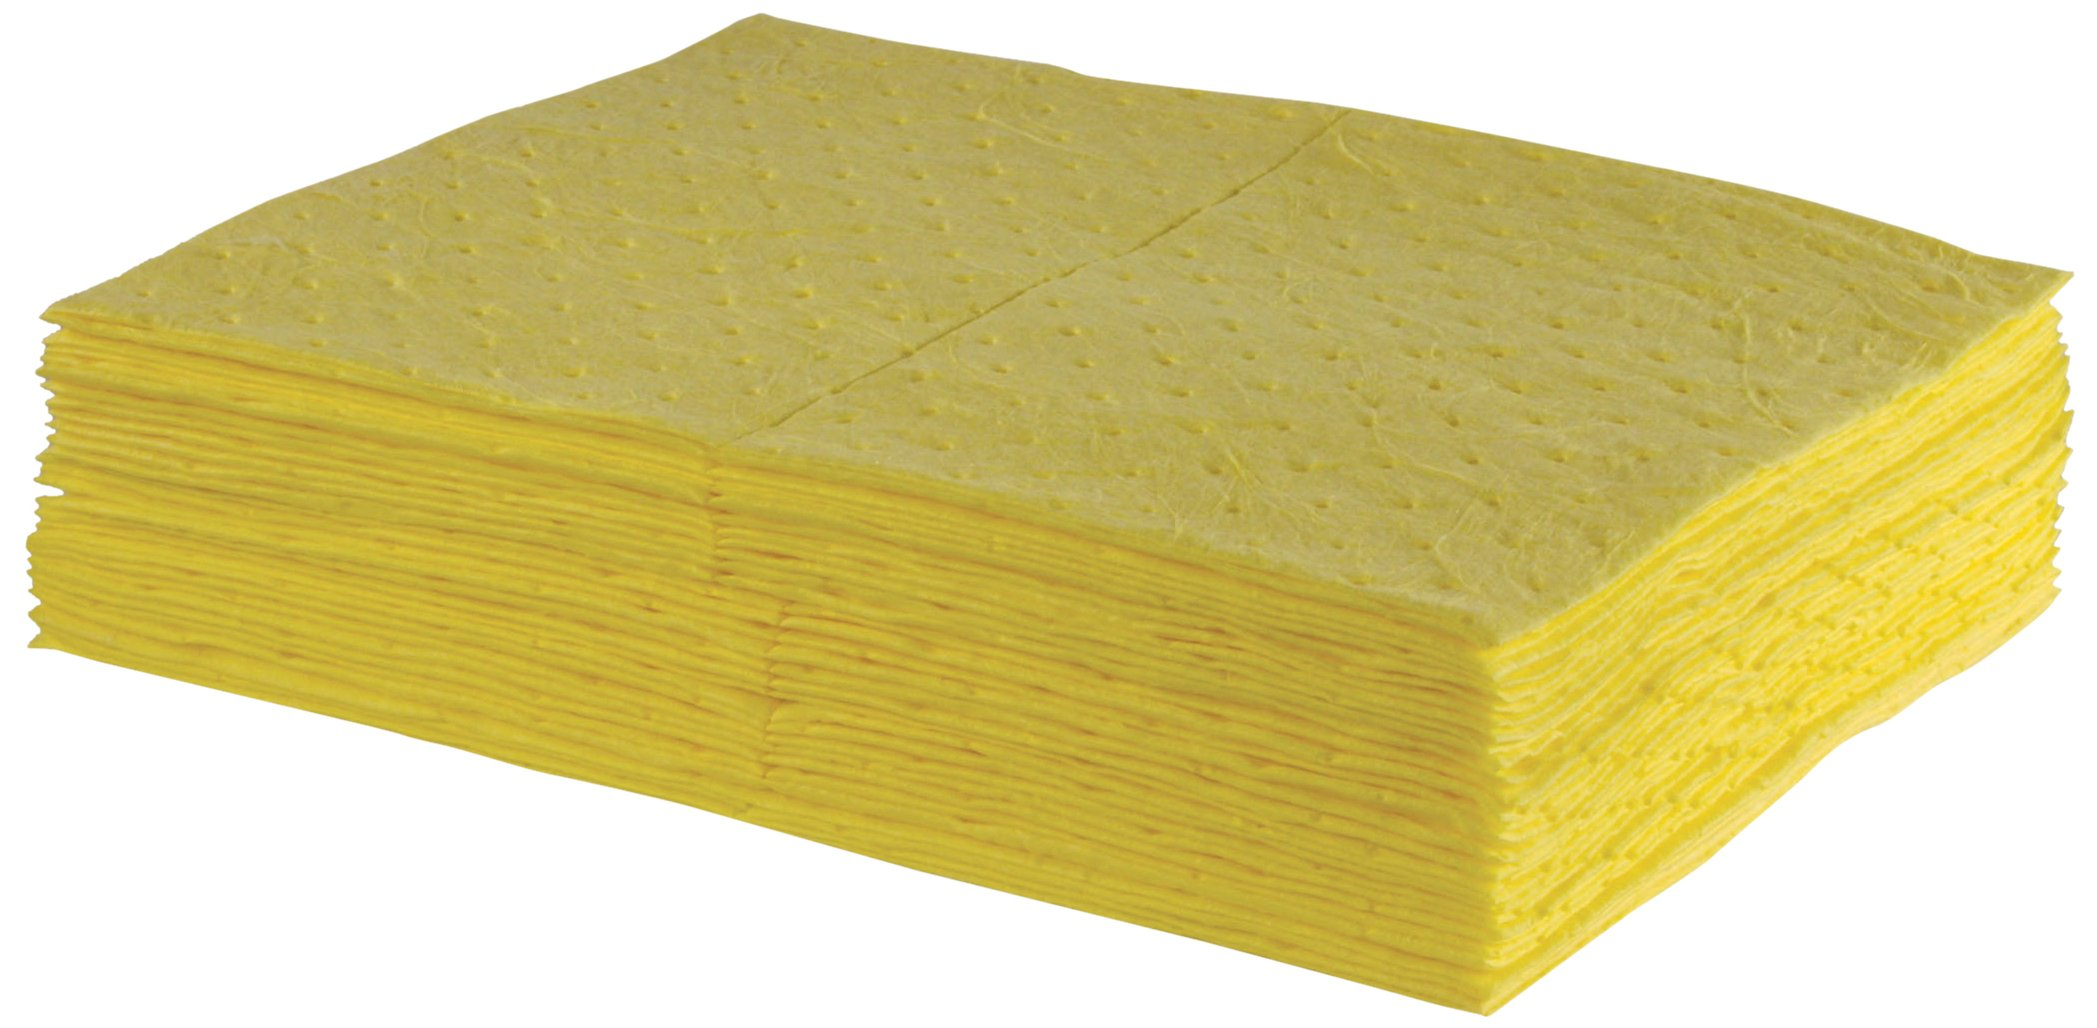 ESP 2MBYPB Polypropylene Medium Weight Meltblown Absorbent Sonic Bonded HazMat Pad, 20 Gallons Oil and 13 Gallons Water Absorbency, 18'' Length X 15'' Width, Yellow (100 per Bale) by ESP (Image #1)